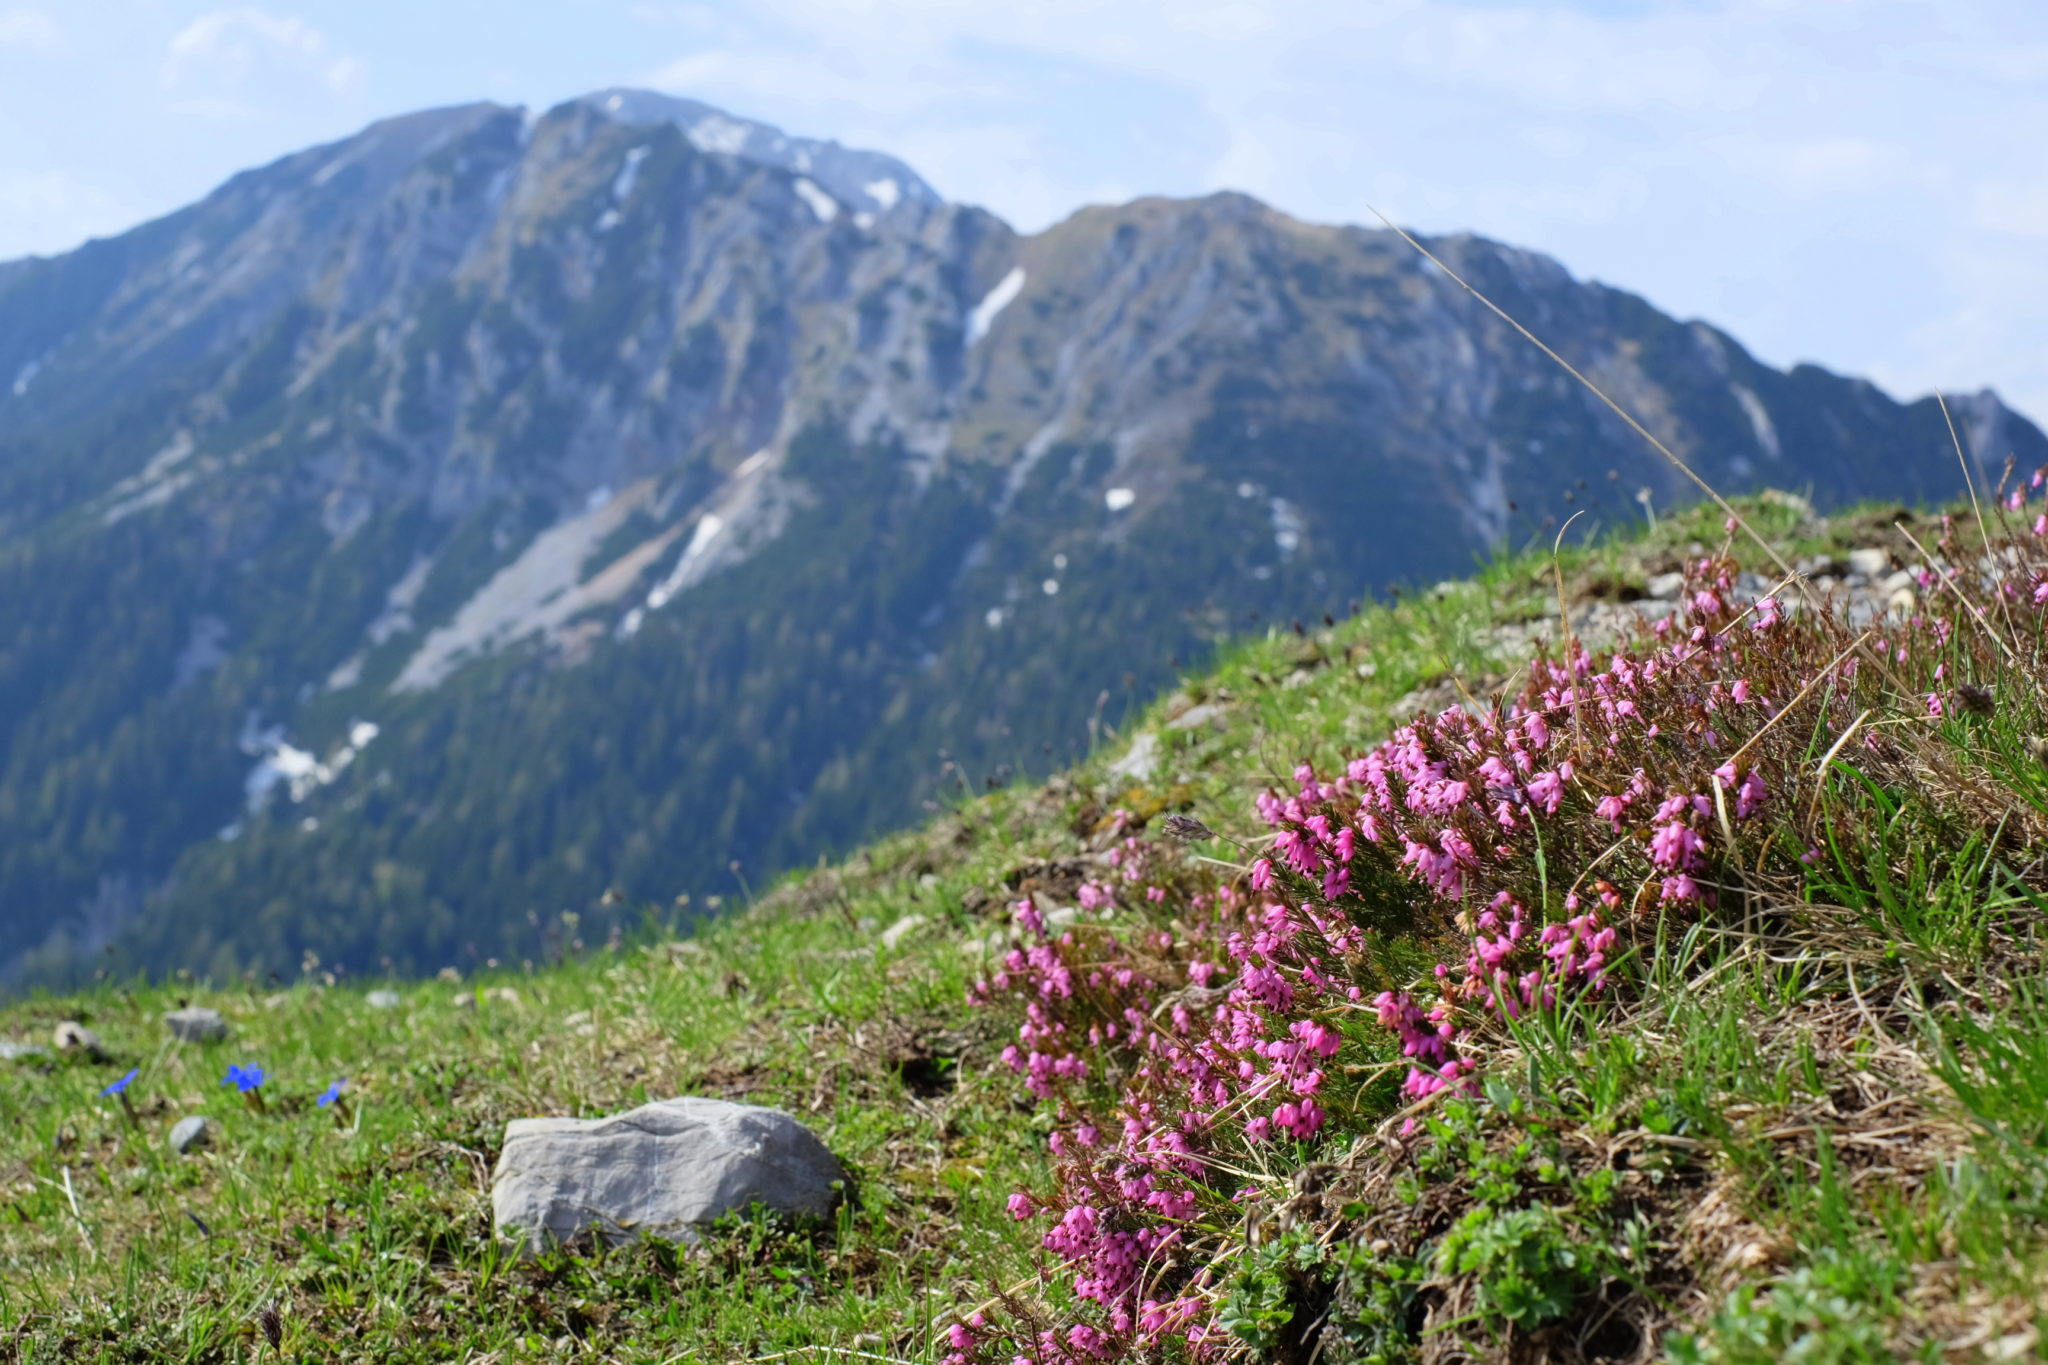 Flowering heather in the Karawanks mountains, Slovenia